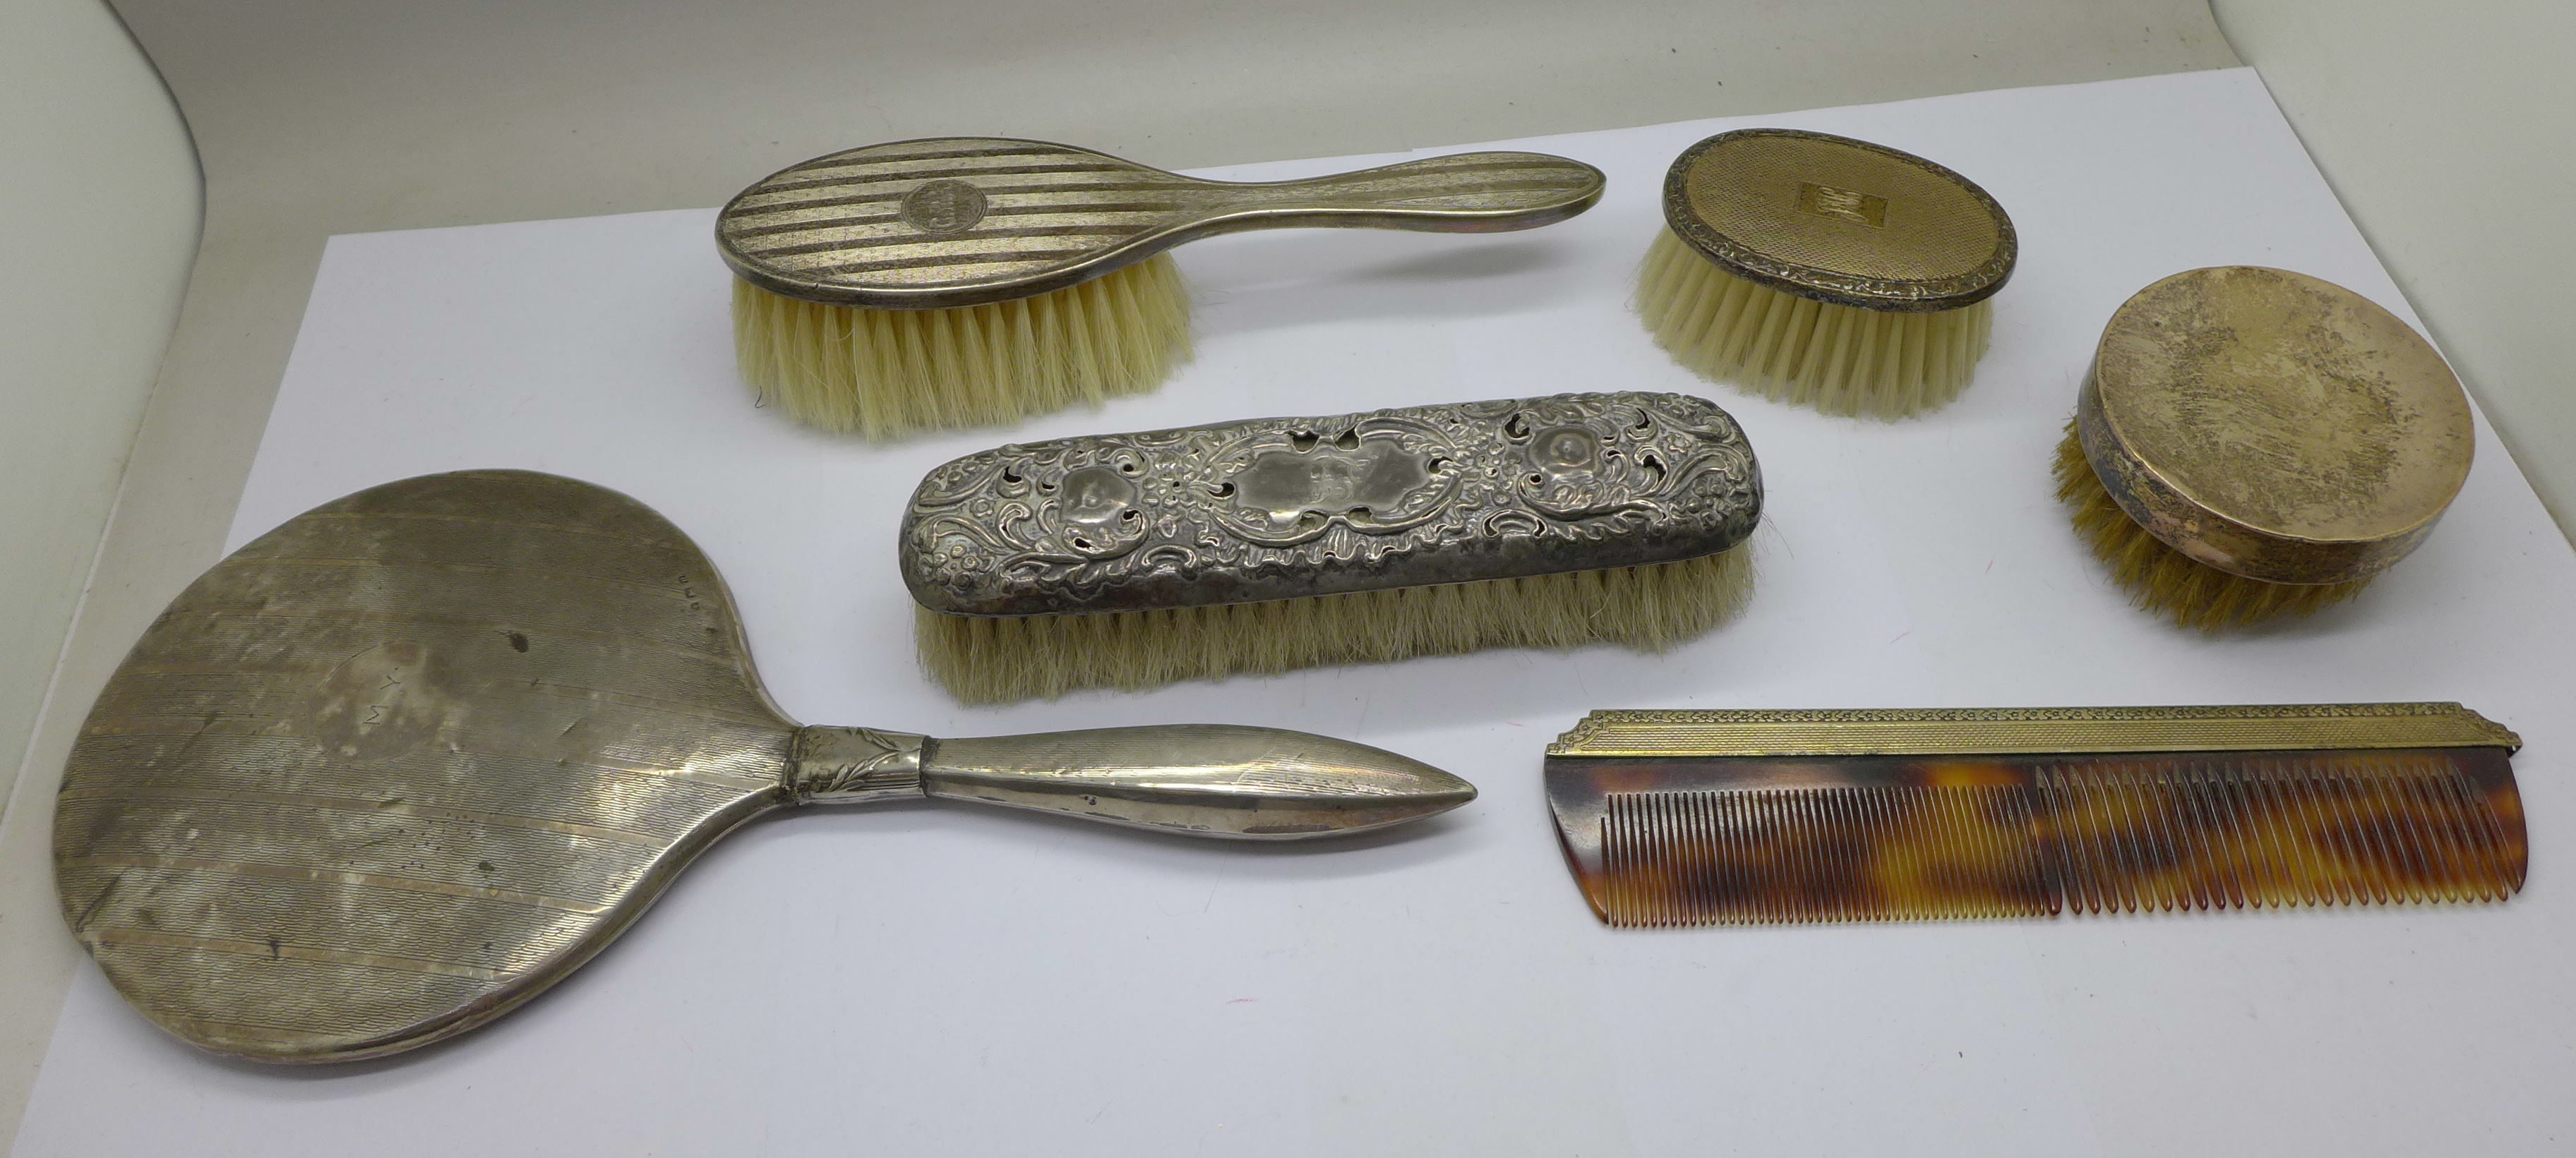 Silver brushes (two cased), comb and a hand mirror